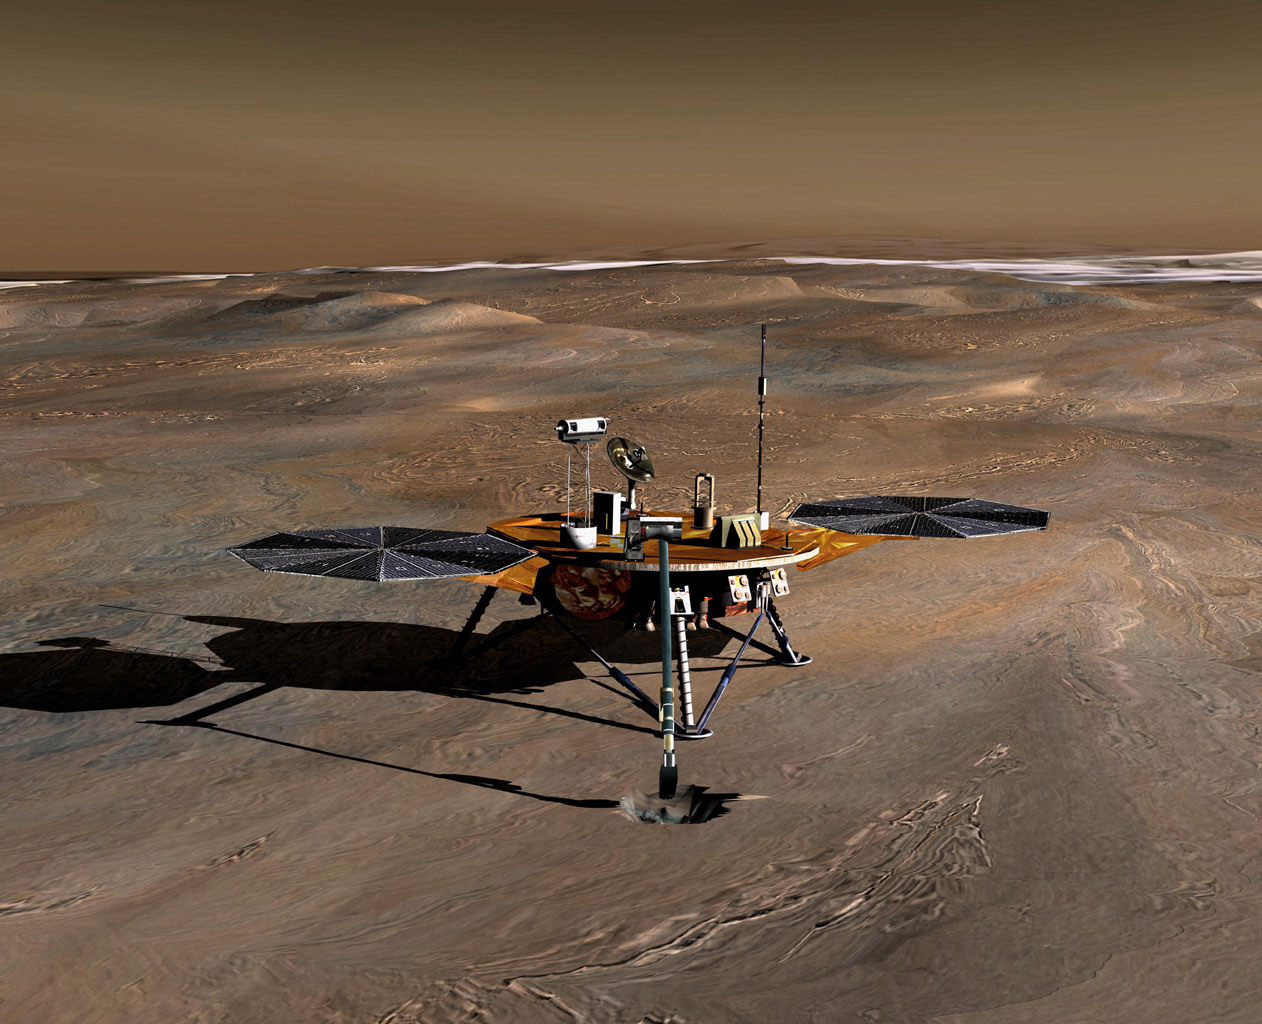 NASA's Phoenix Mars Lander, landed on May 25, 2008, and explored the history of water and monitored polar climate on Mars until communications ended in November, 2008, about six months after landing, when its solar panels ceased operating in the winter.